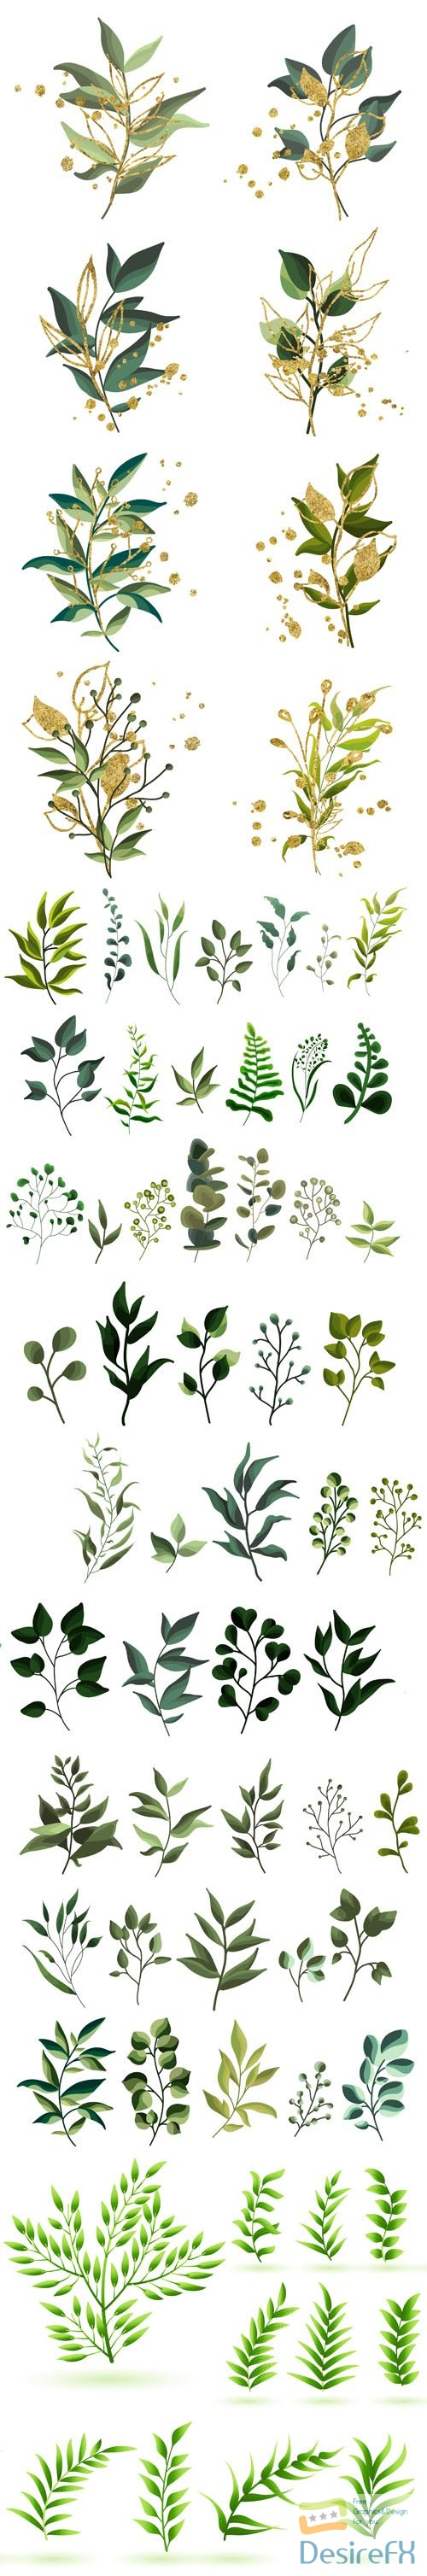 Collection of Plants, Leaves and Flowers Vector Templates